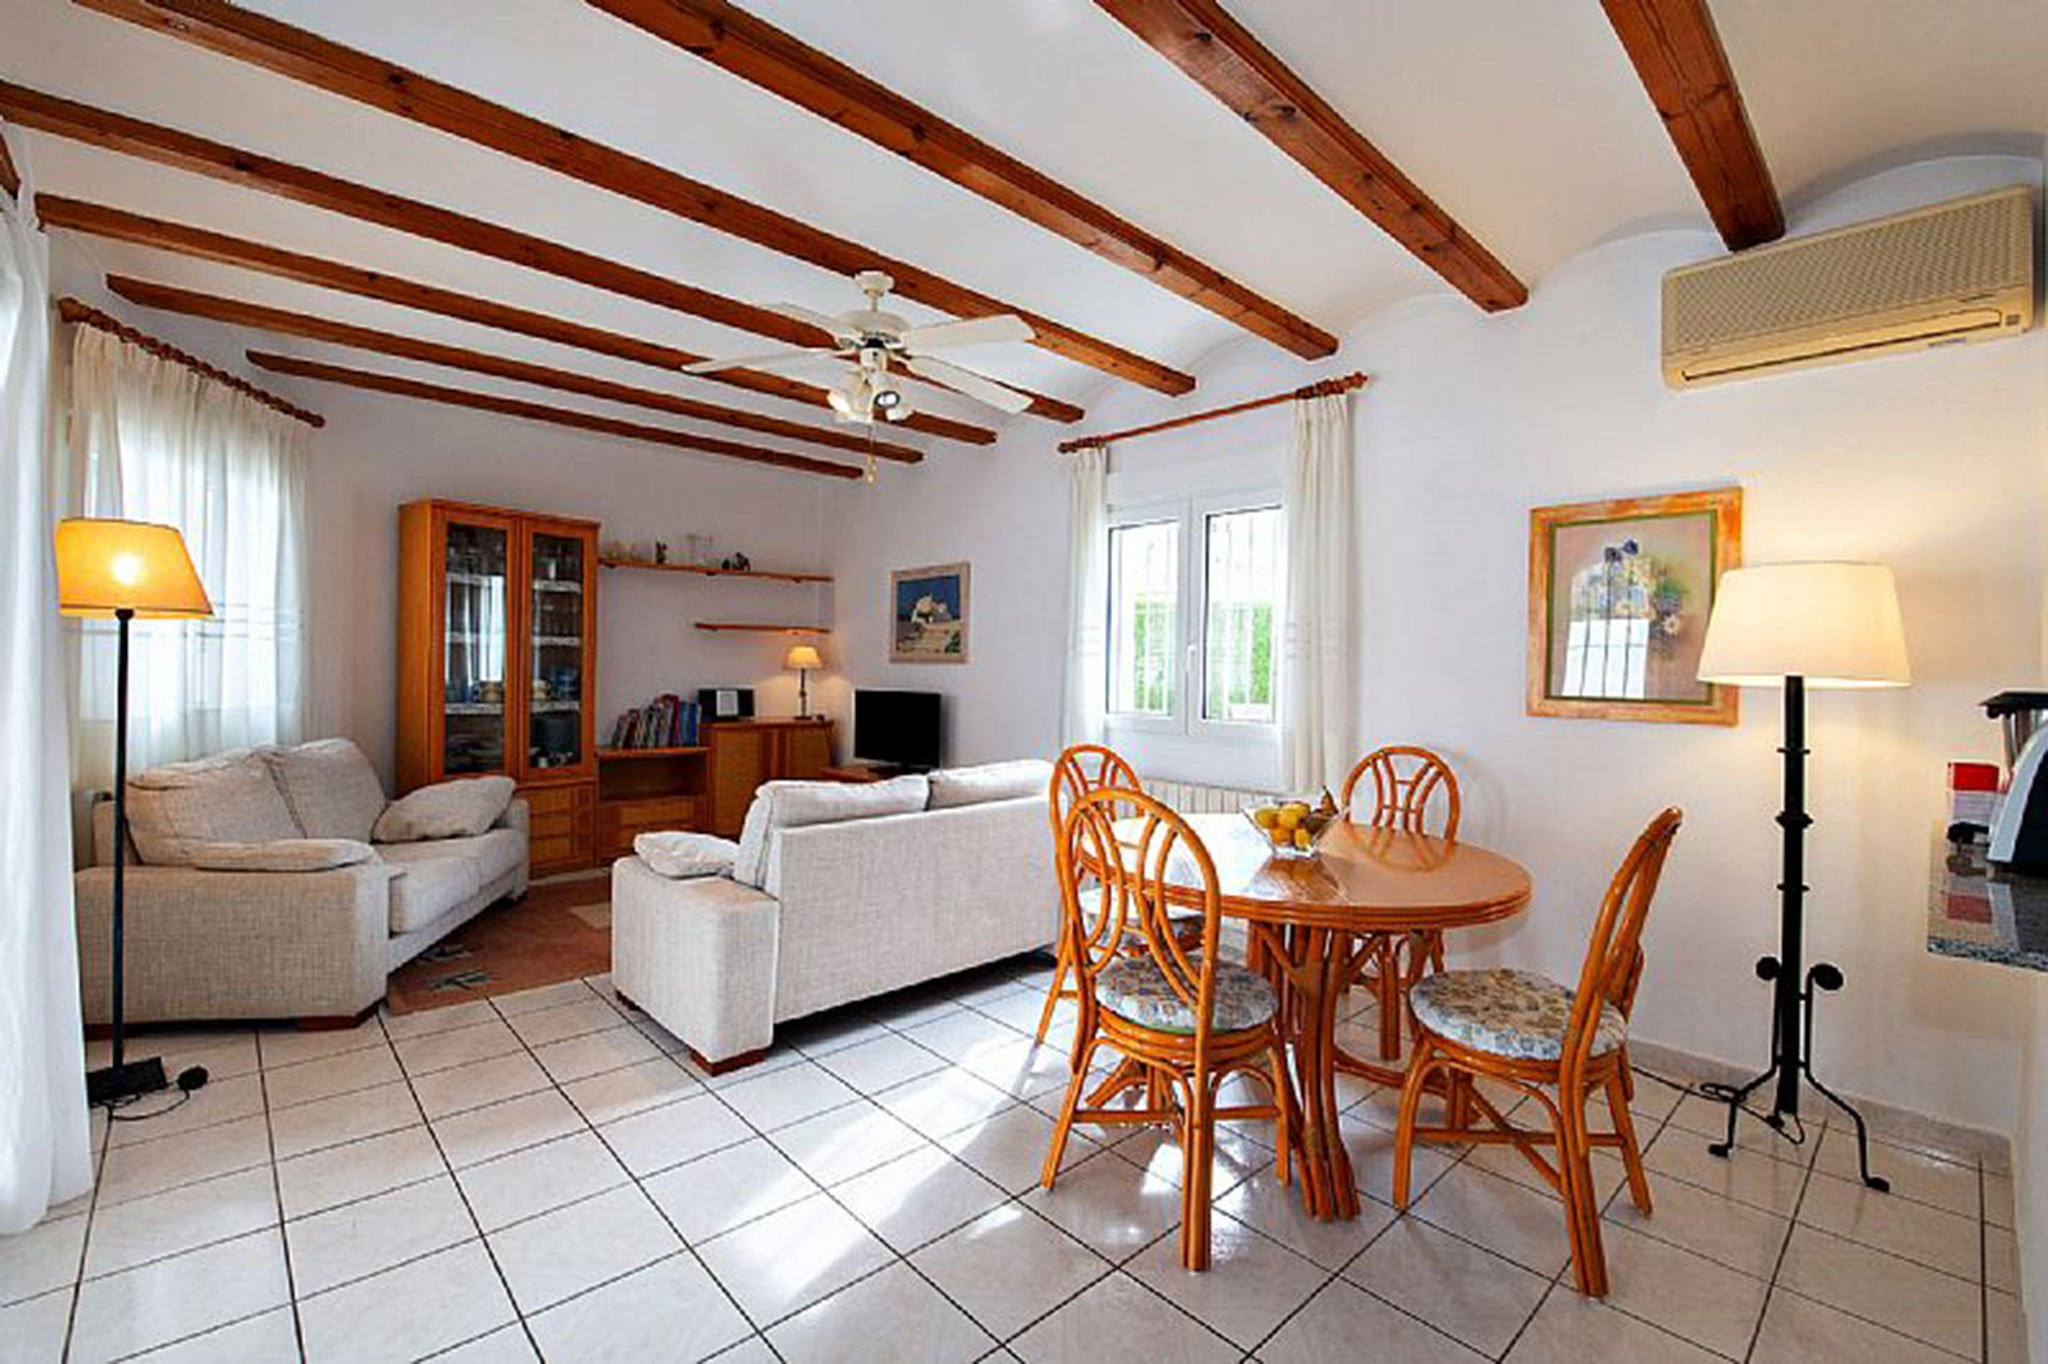 Living room of a chalet for sale in Dénia - Euroholding